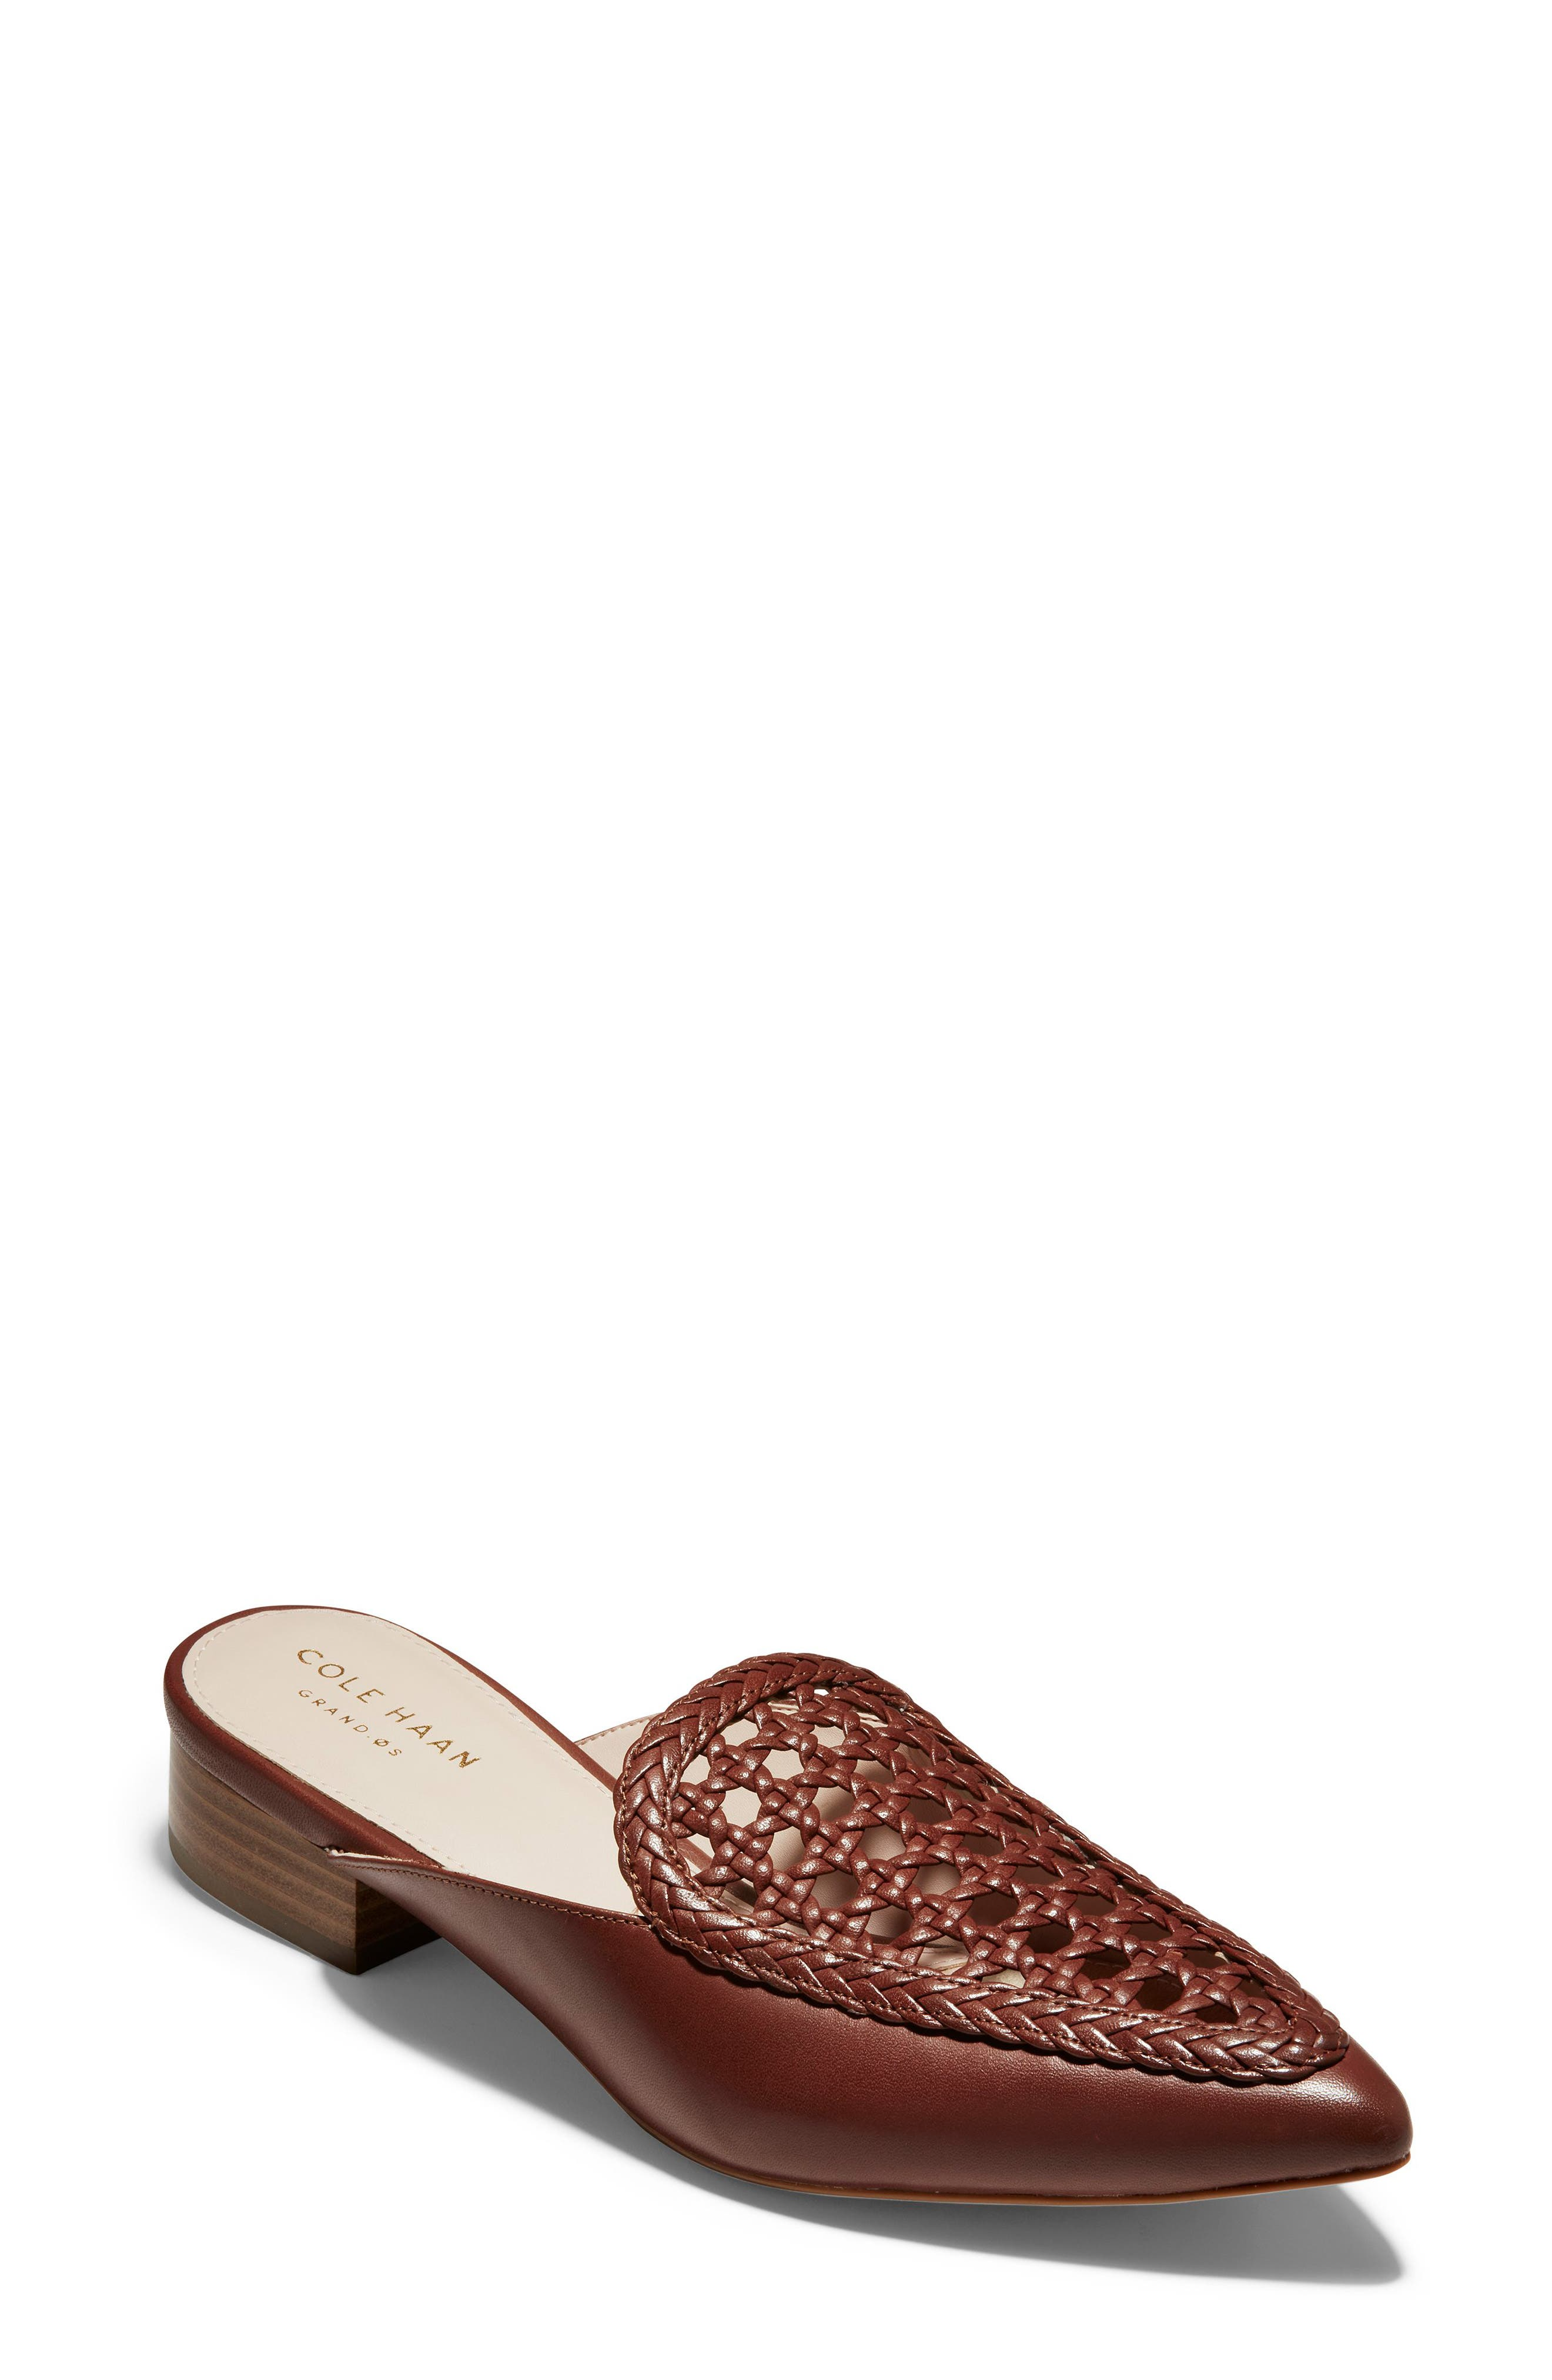 Payson Woven Mule, Main, color, CHERRY MAHOGANY LEATHER